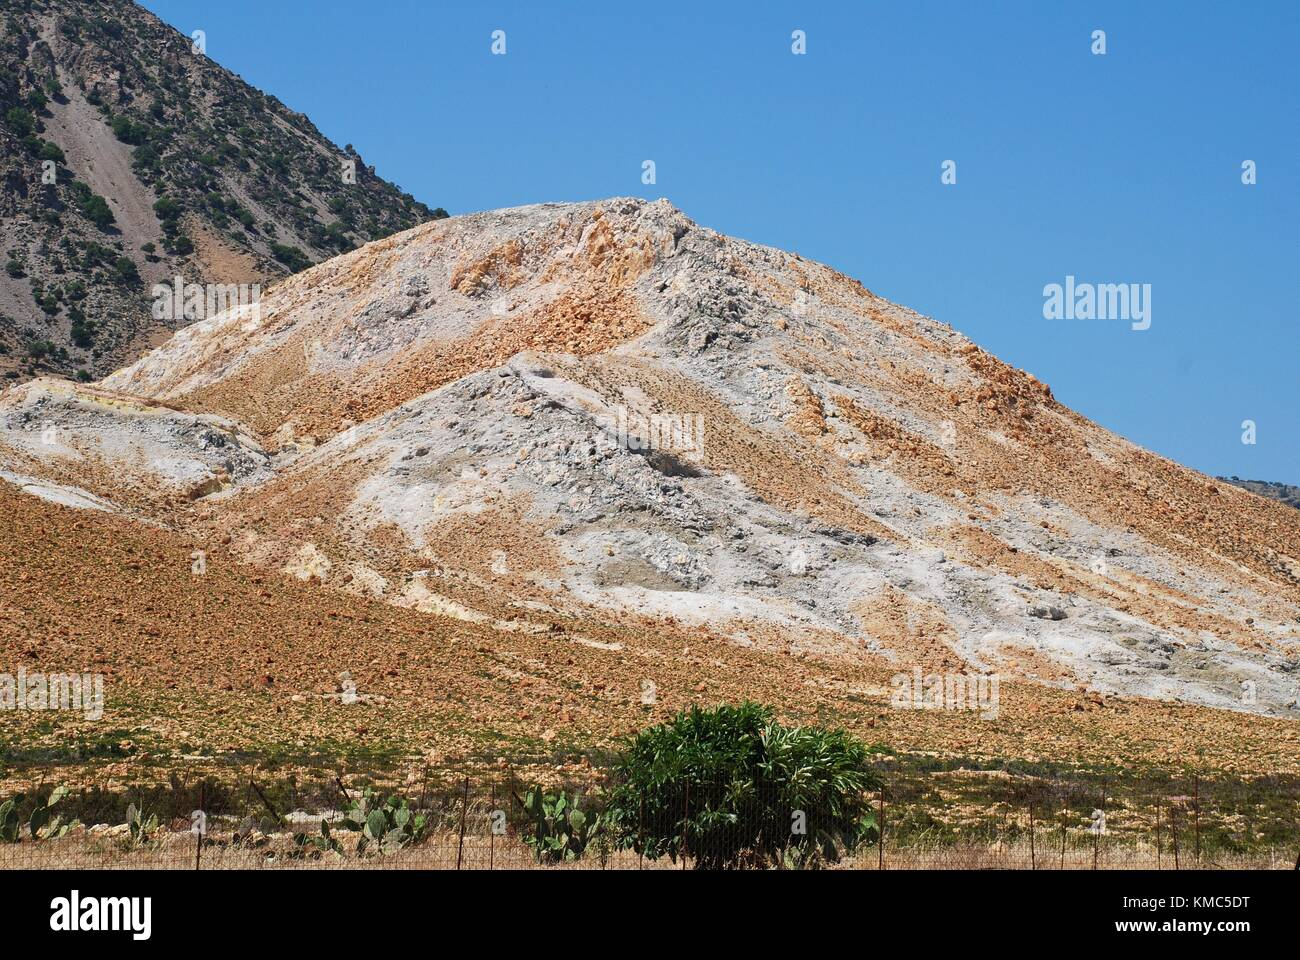 Volcanic rock formations by the Stefanos volcano crater on the Greek island of Nisyros. Stock Photo